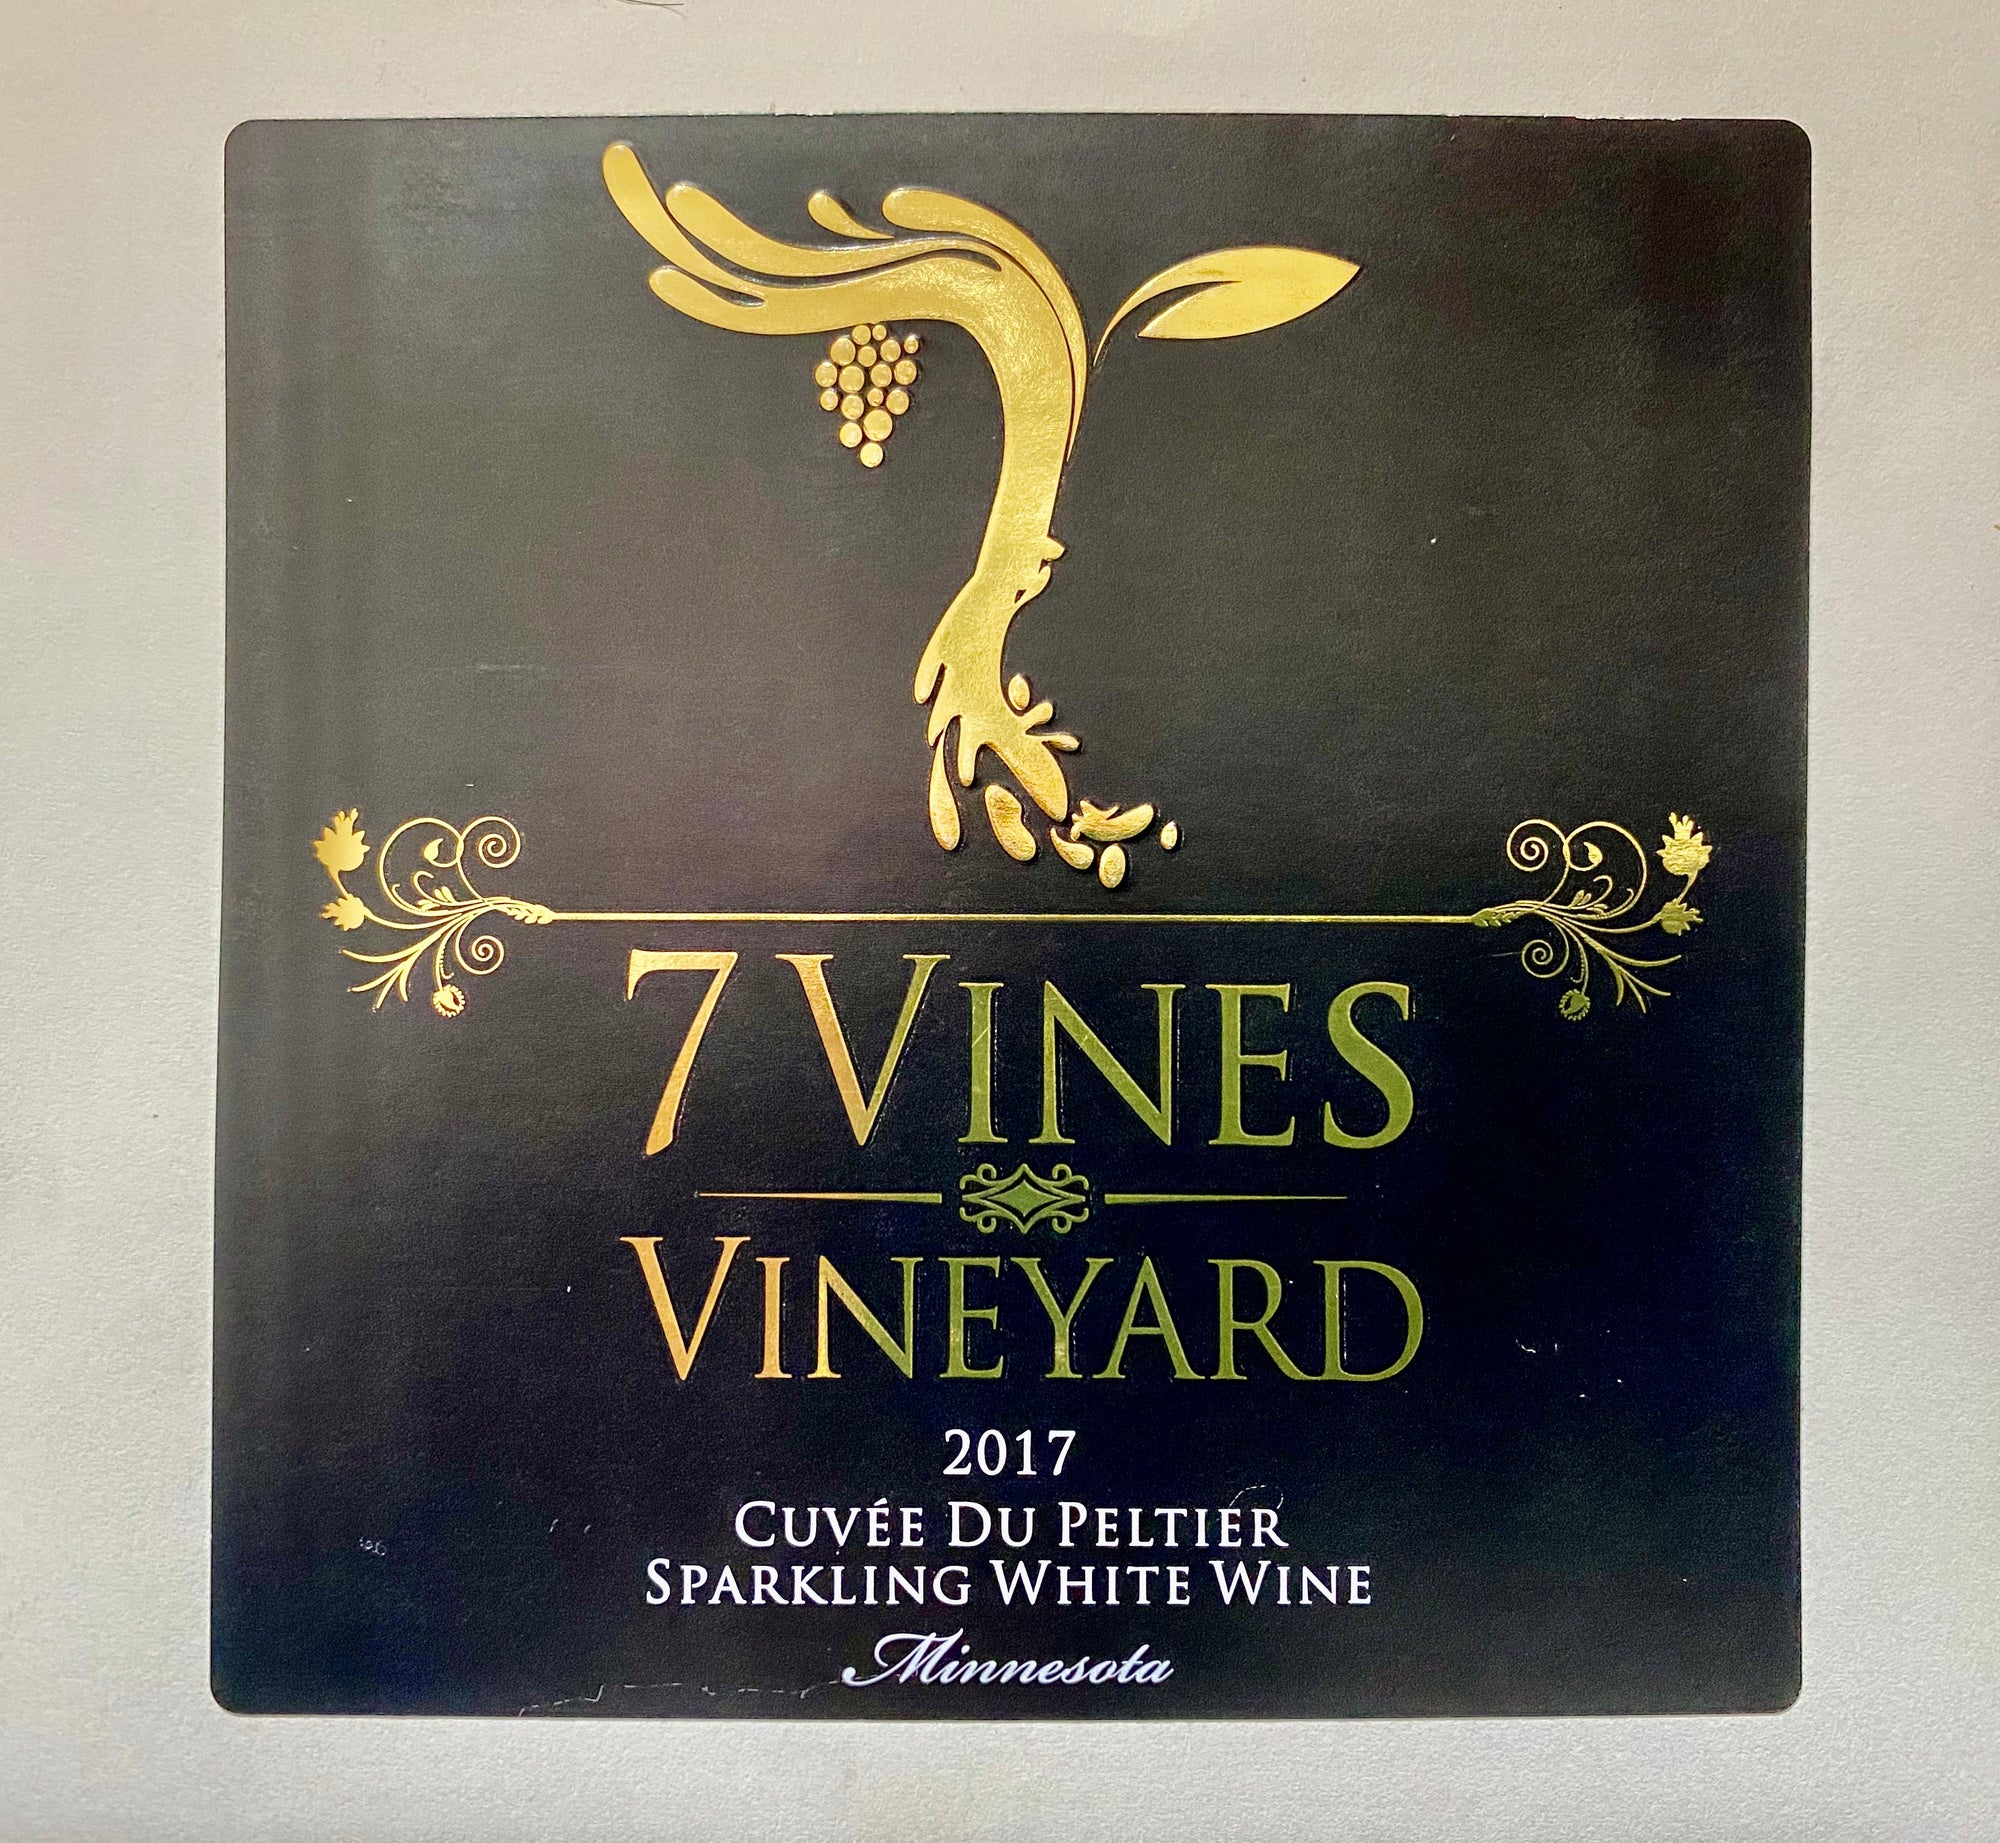 7 vines winery gift card